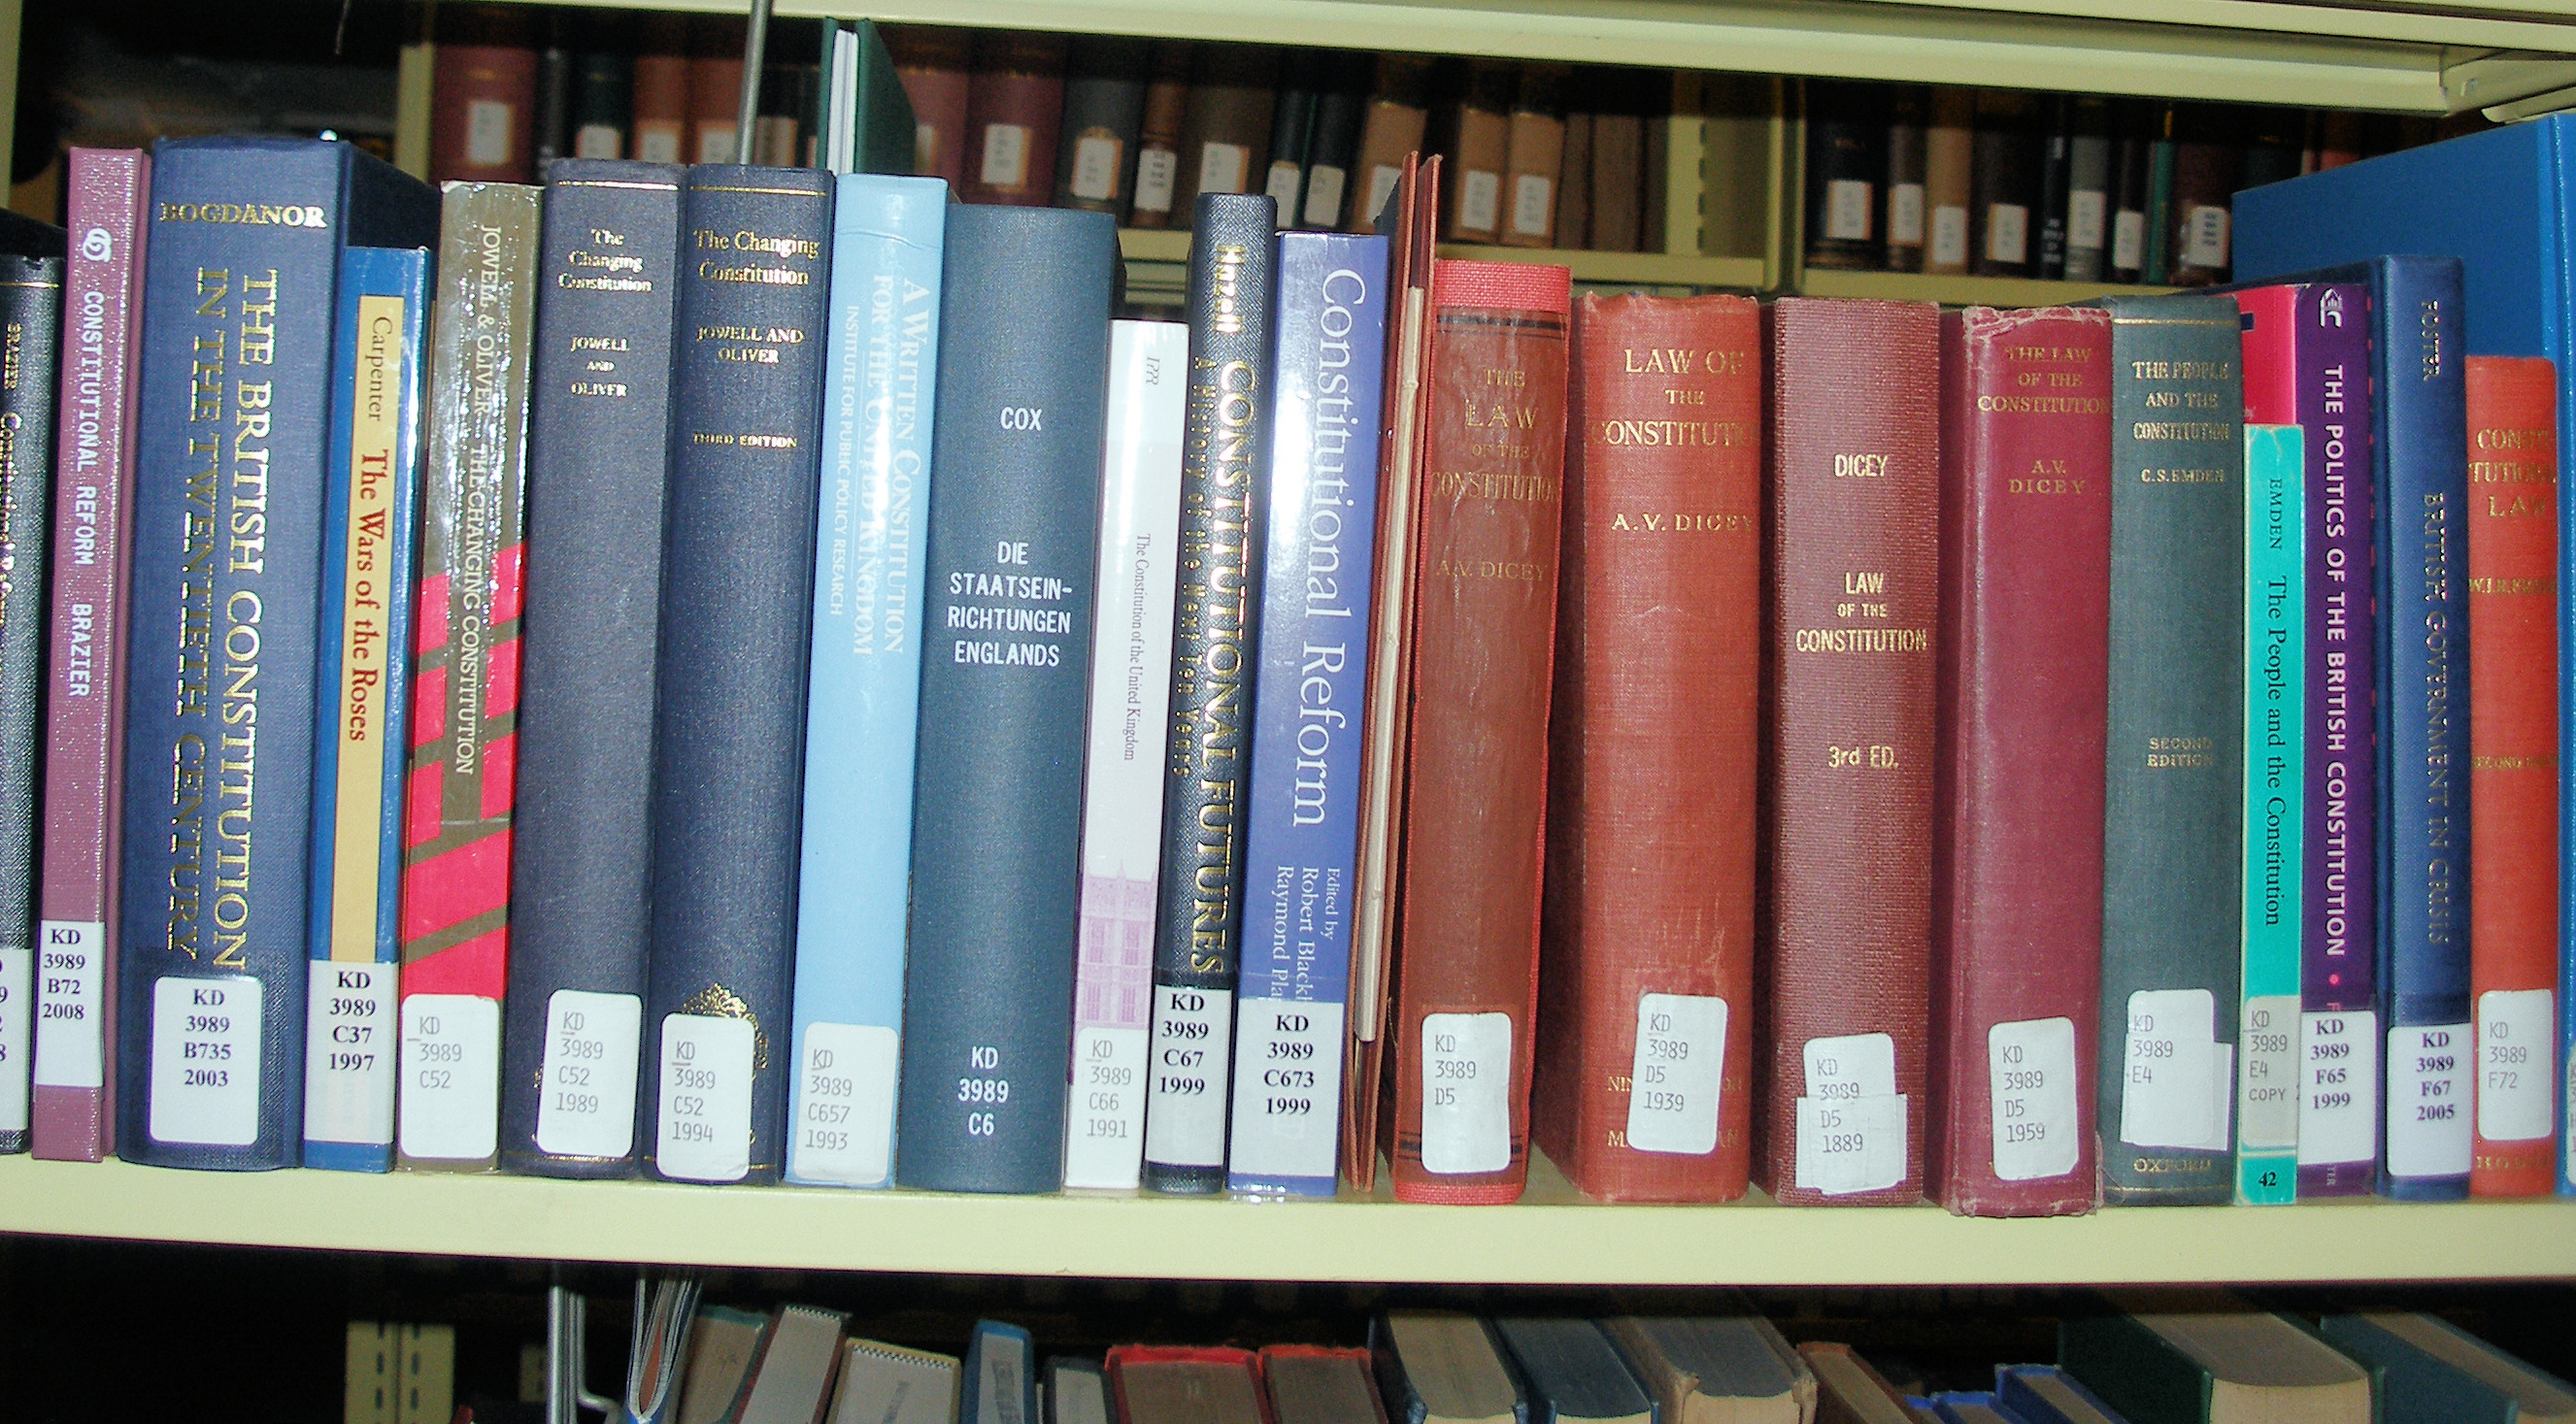 File:UK Constitution books jpg - Wikimedia Commons